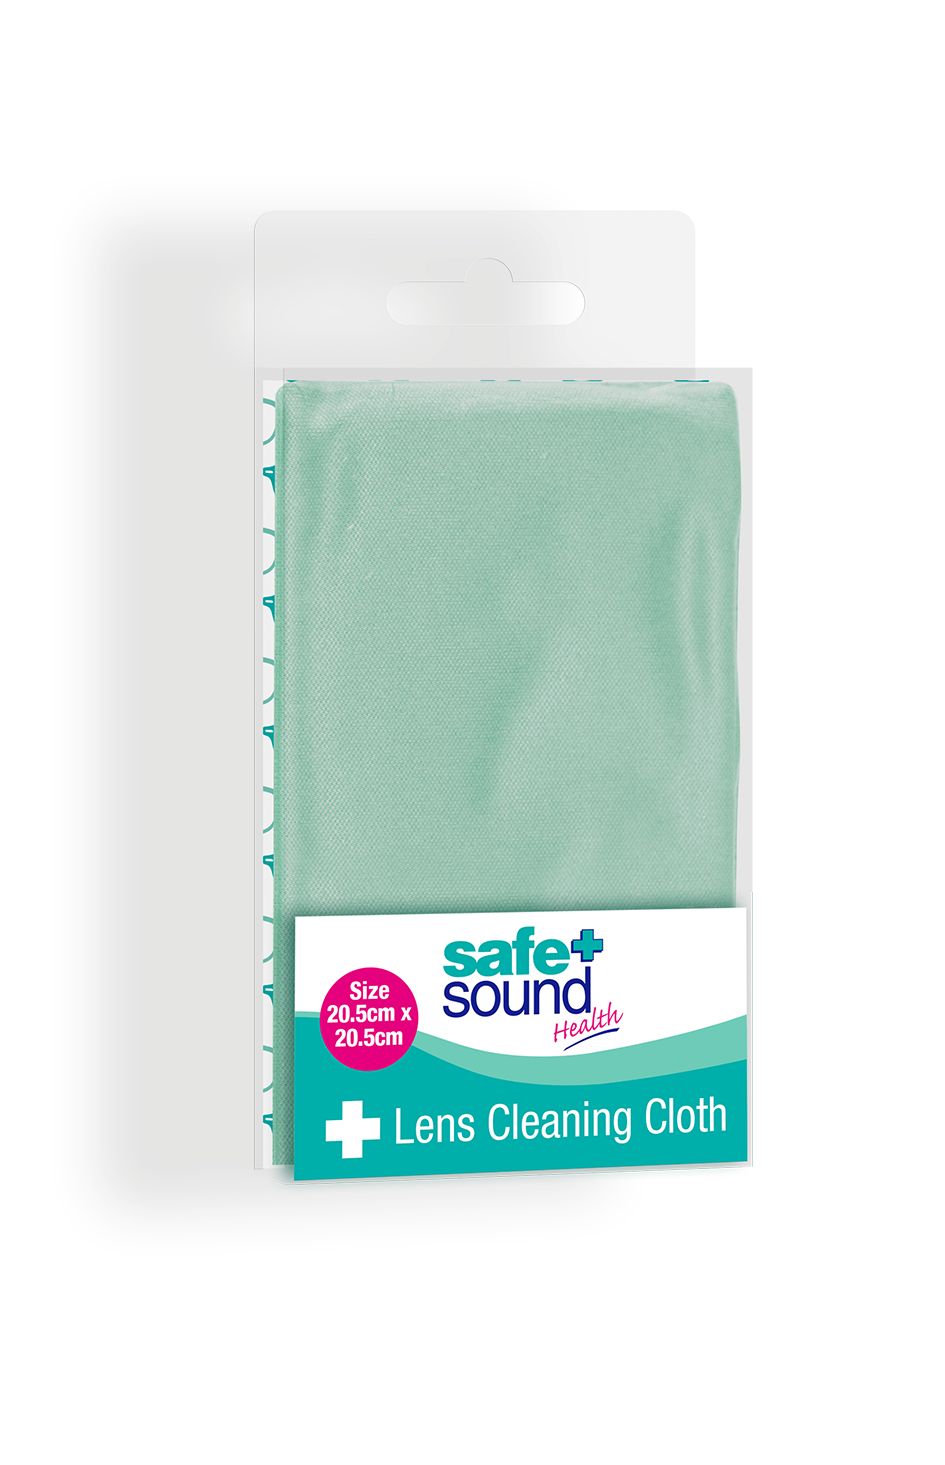 Safe and Sound Health Lens and Glasses Cleaning Microfiber Cloth